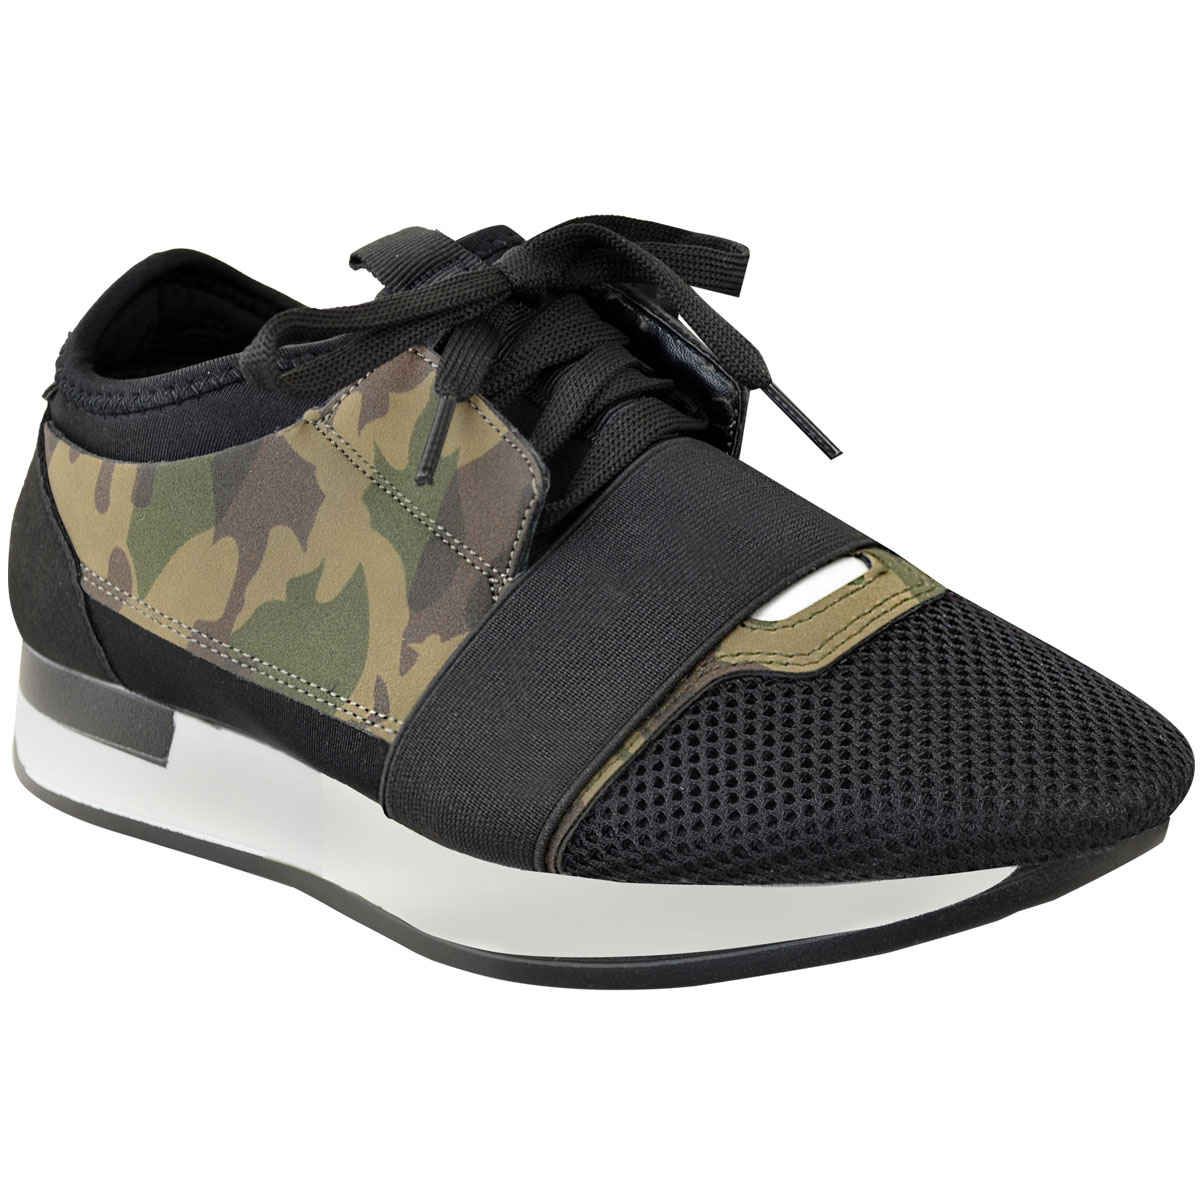 Womens Ladies Sneakers Bali Trainer Runner Stretch Band Gym Comfy Size | eBay